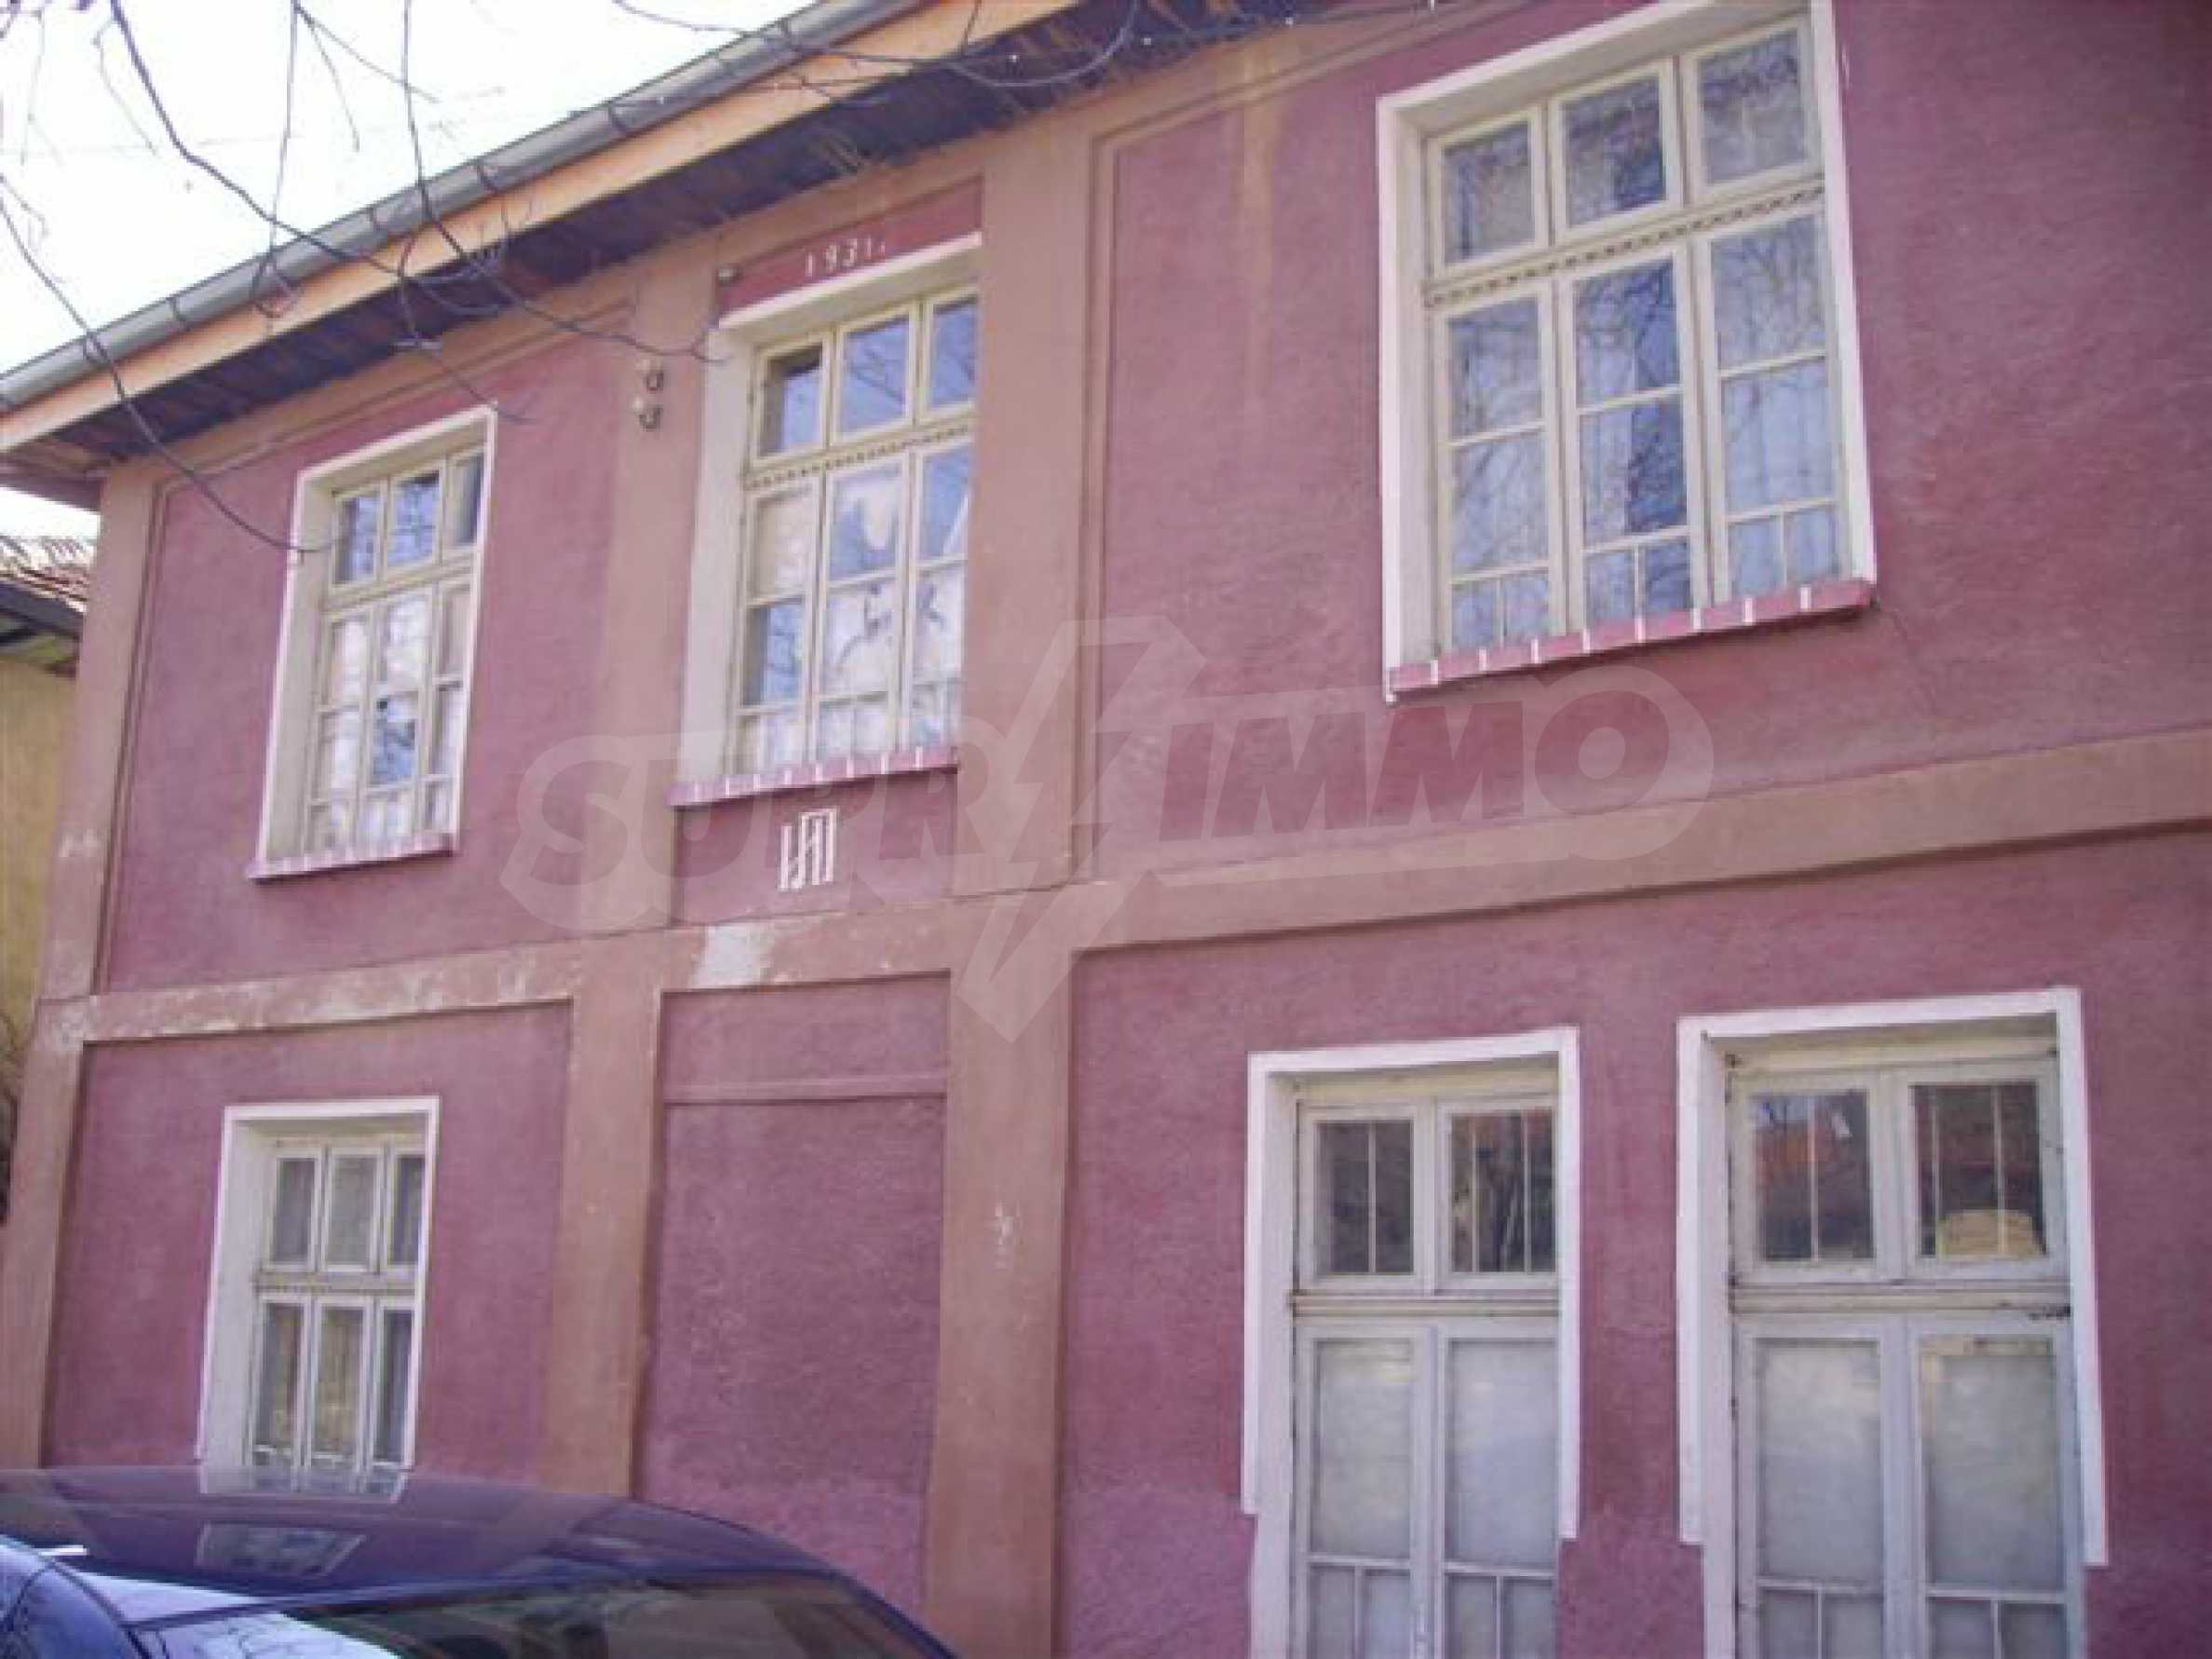 Two storey house in a village near Lovech